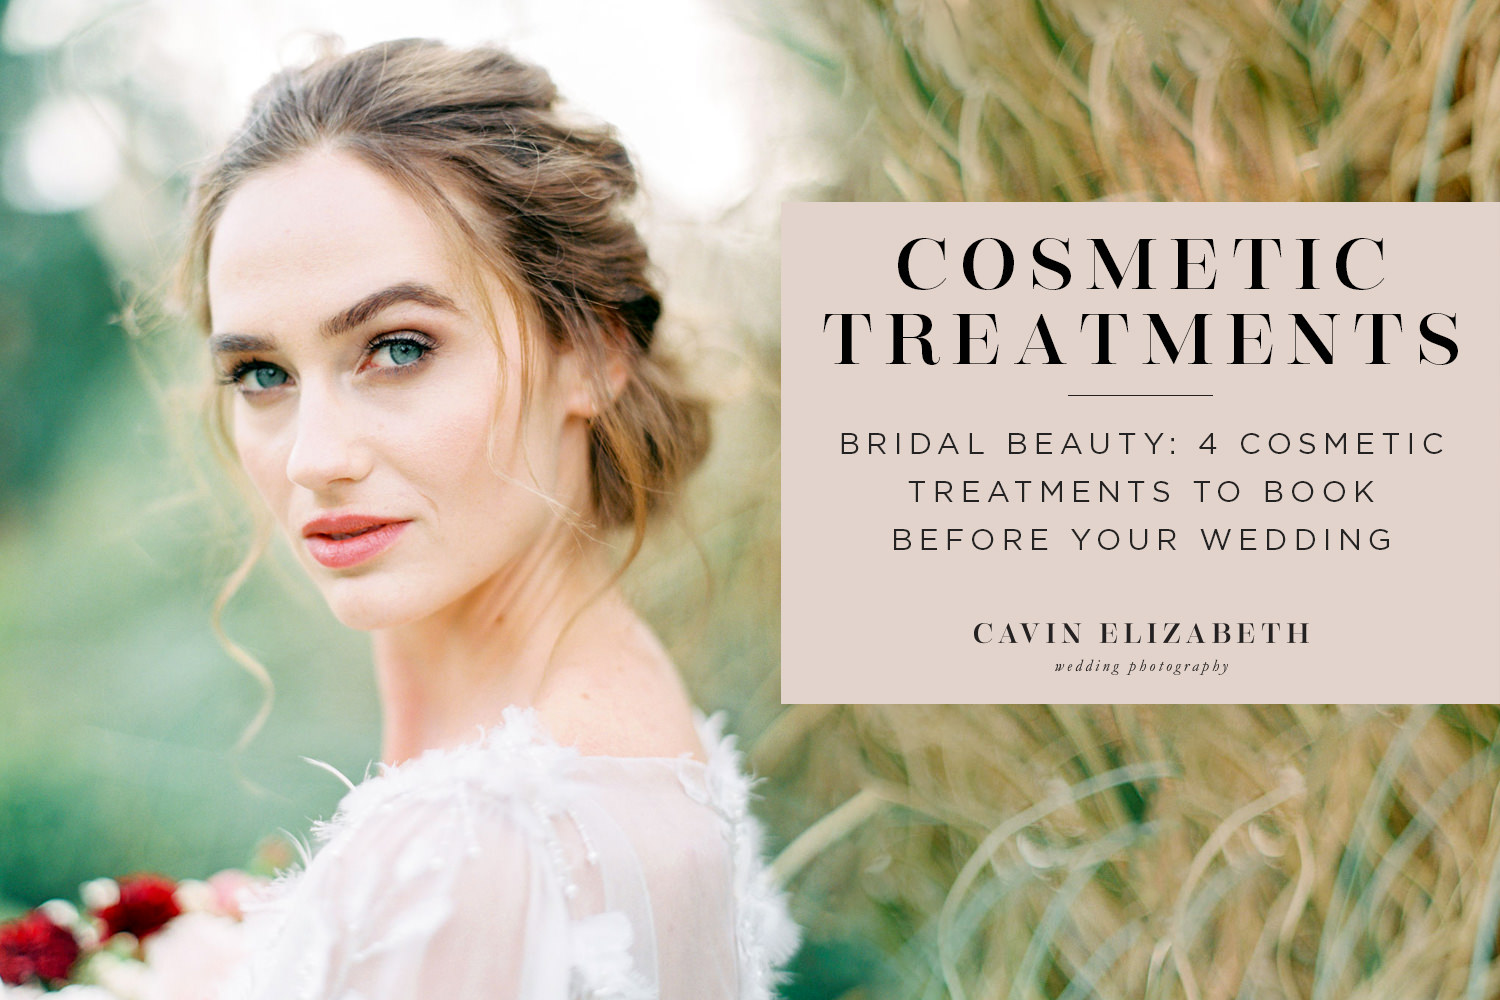 Bridal Beauty: 4 Cosmetic Treatments to Book Before Your Wedding to look your best in front of the camera, guest blogger Tilly Grant